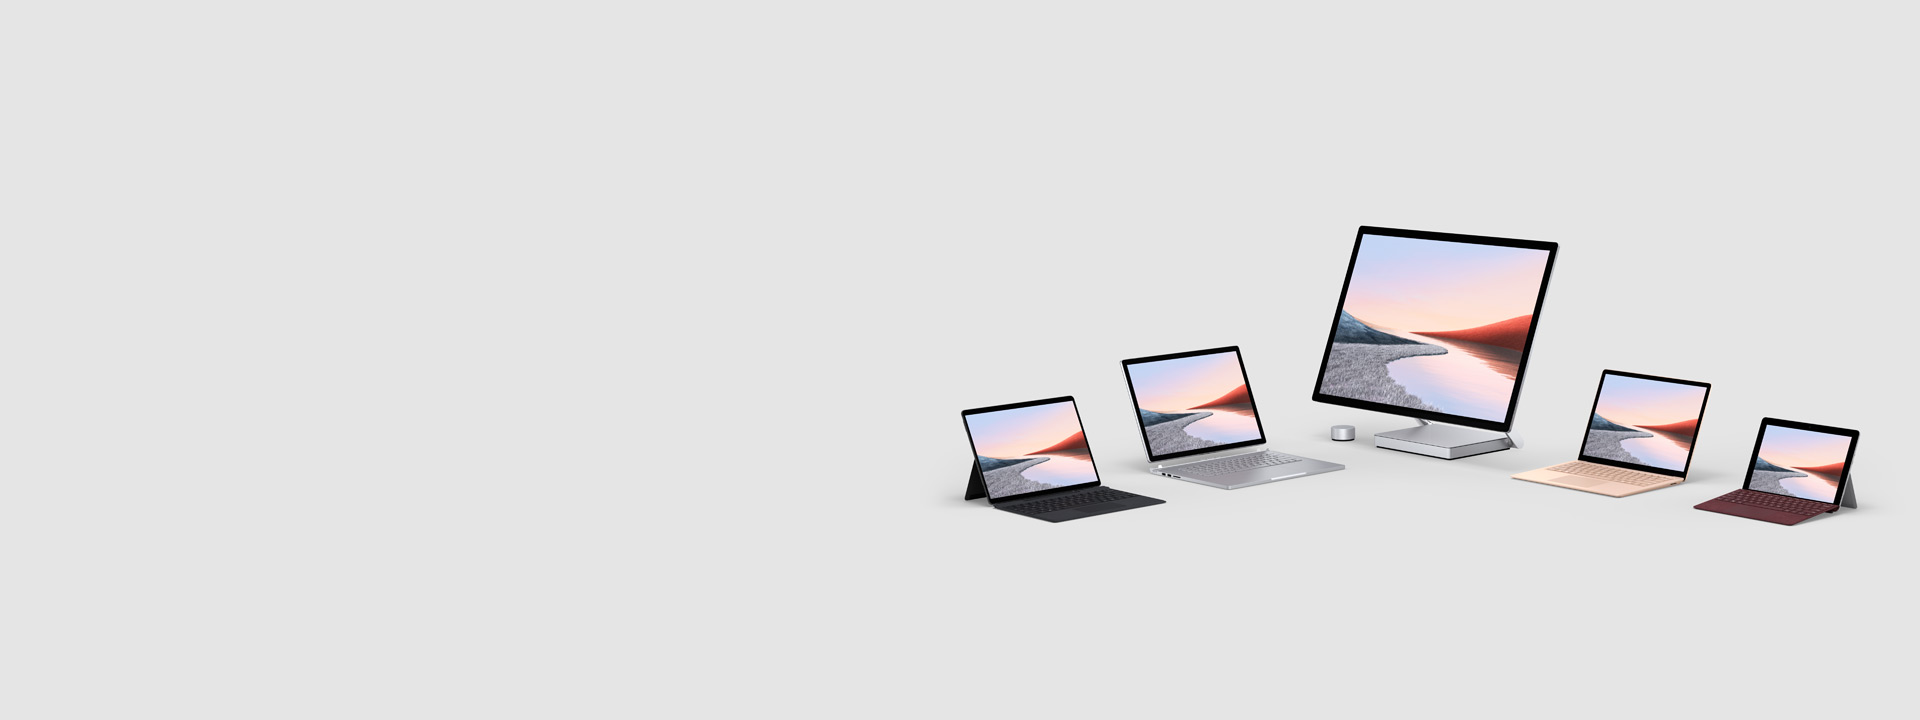 Several computers from Surface including Surface Pro 7, Surface Pro X , Surface Book 2, Surface Studio 2, and Surface Go